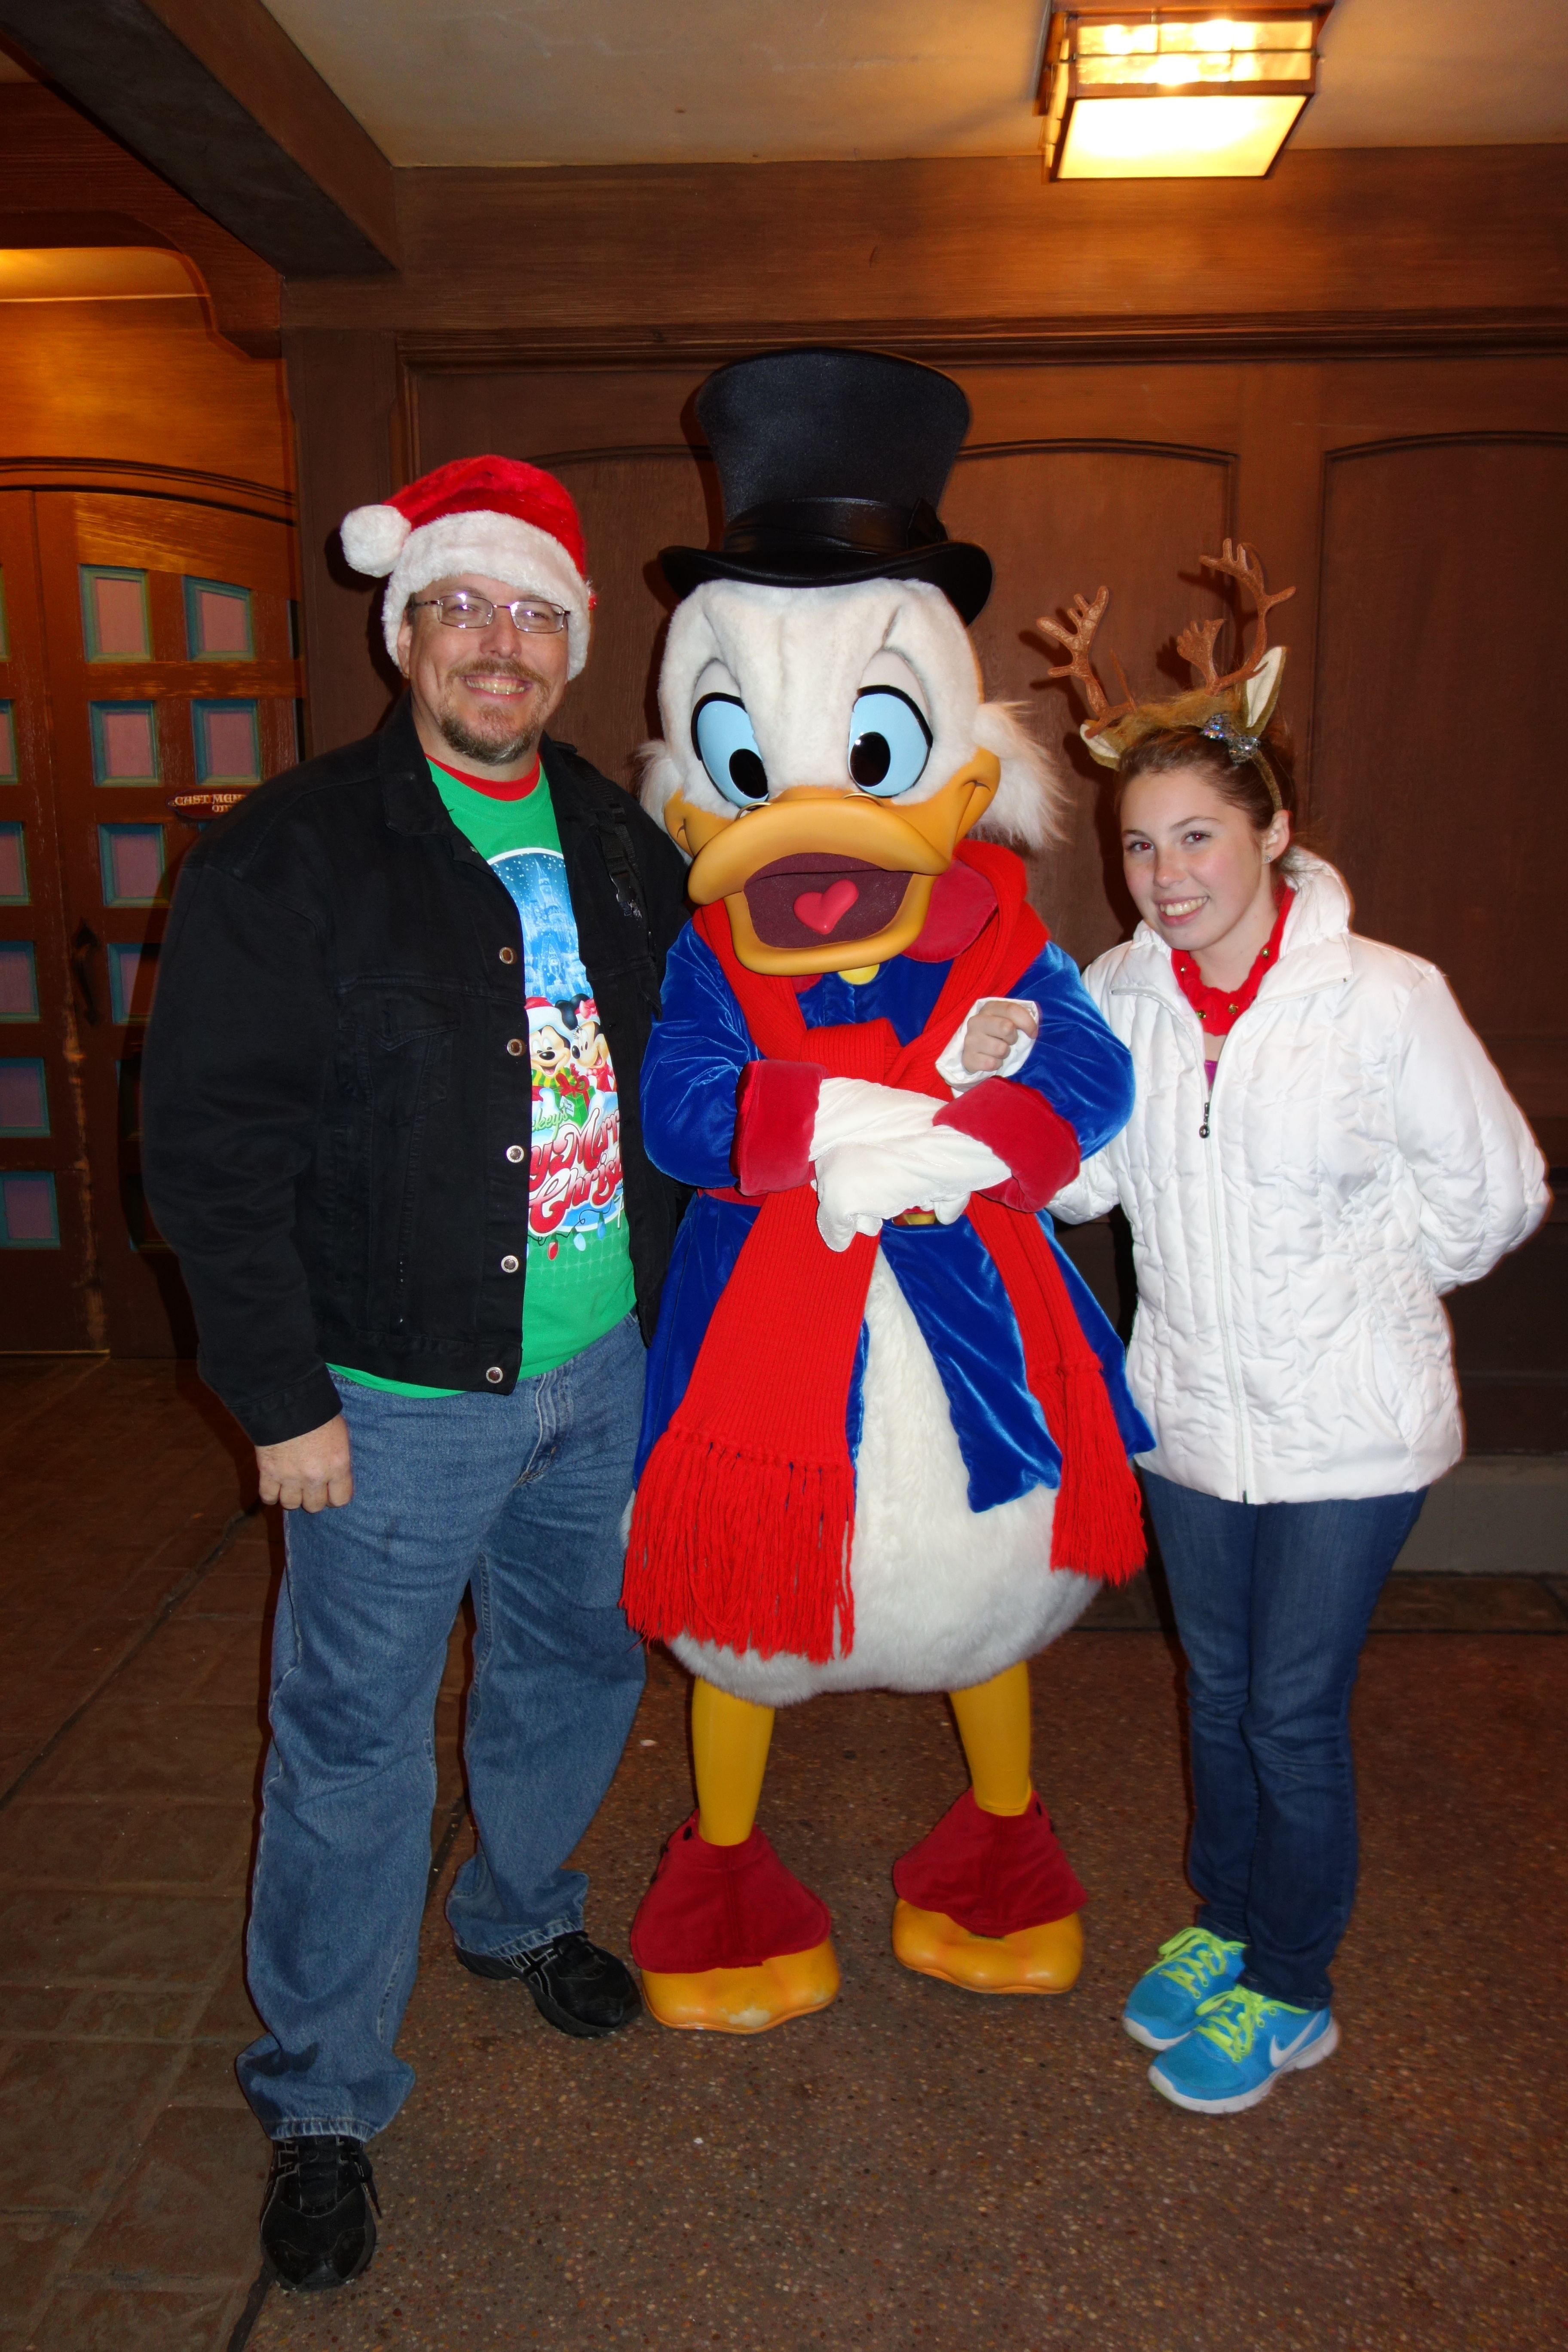 Mickey S Very Merry Christmas Party Characters Kennythepirate Com Very Merry Christmas Party Mickey S Very Merry Christmas Very Merry Christmas